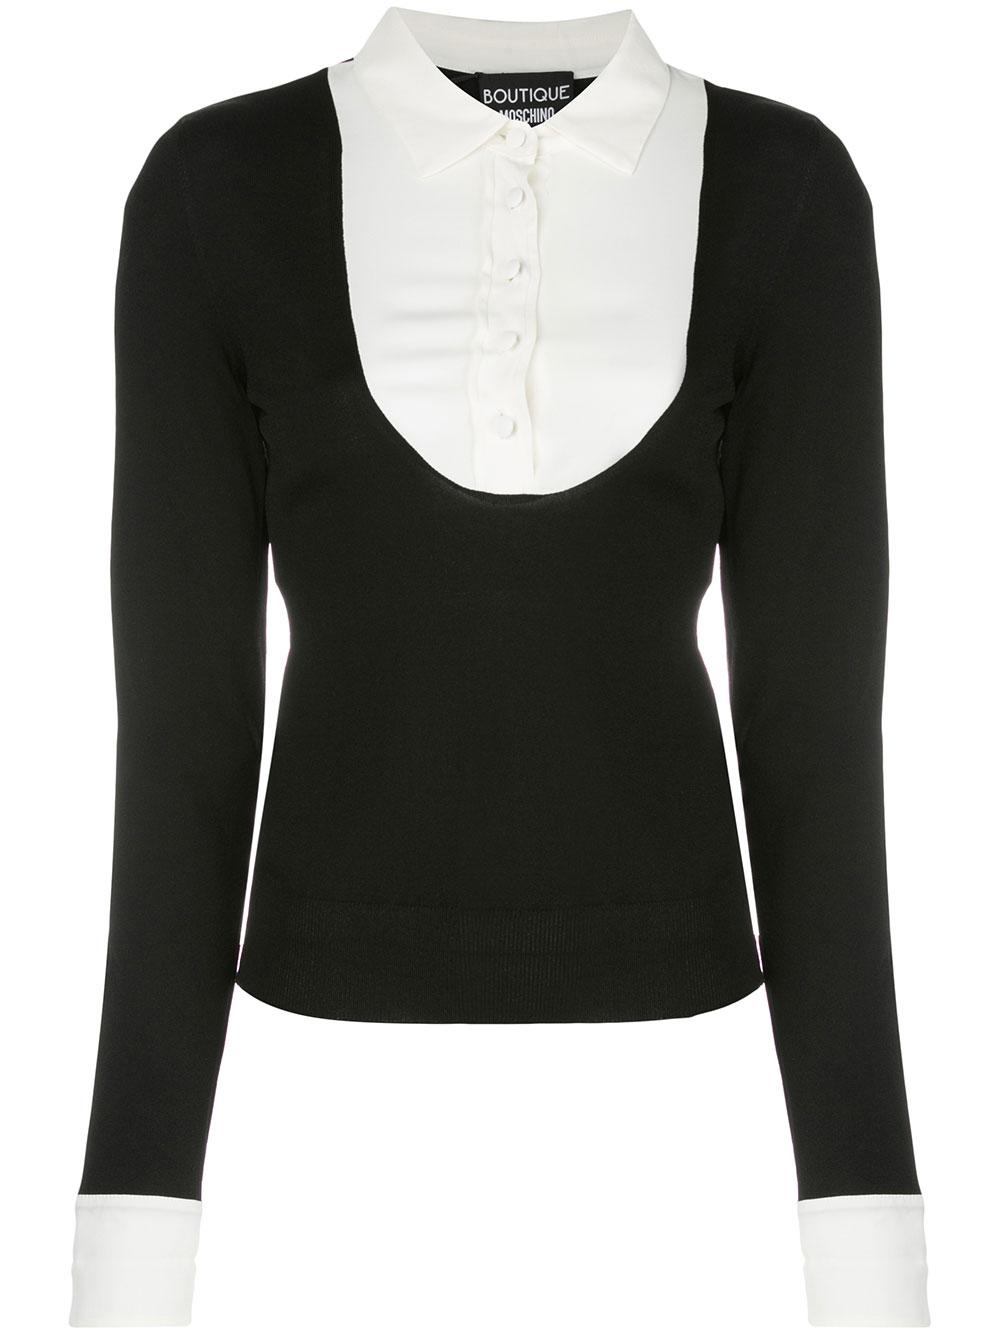 Long Sleeve Scoopneck Knit Top With Button Up Inset Item # 0906-5801